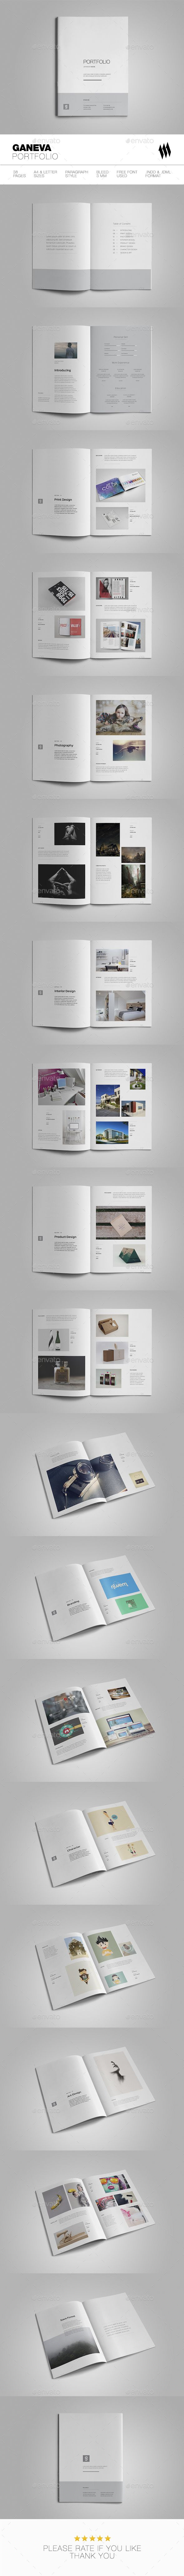 Geneva Portfolio Brochure Tempalte InDesign INDD - 38 Pages, A4 & Letter sizes